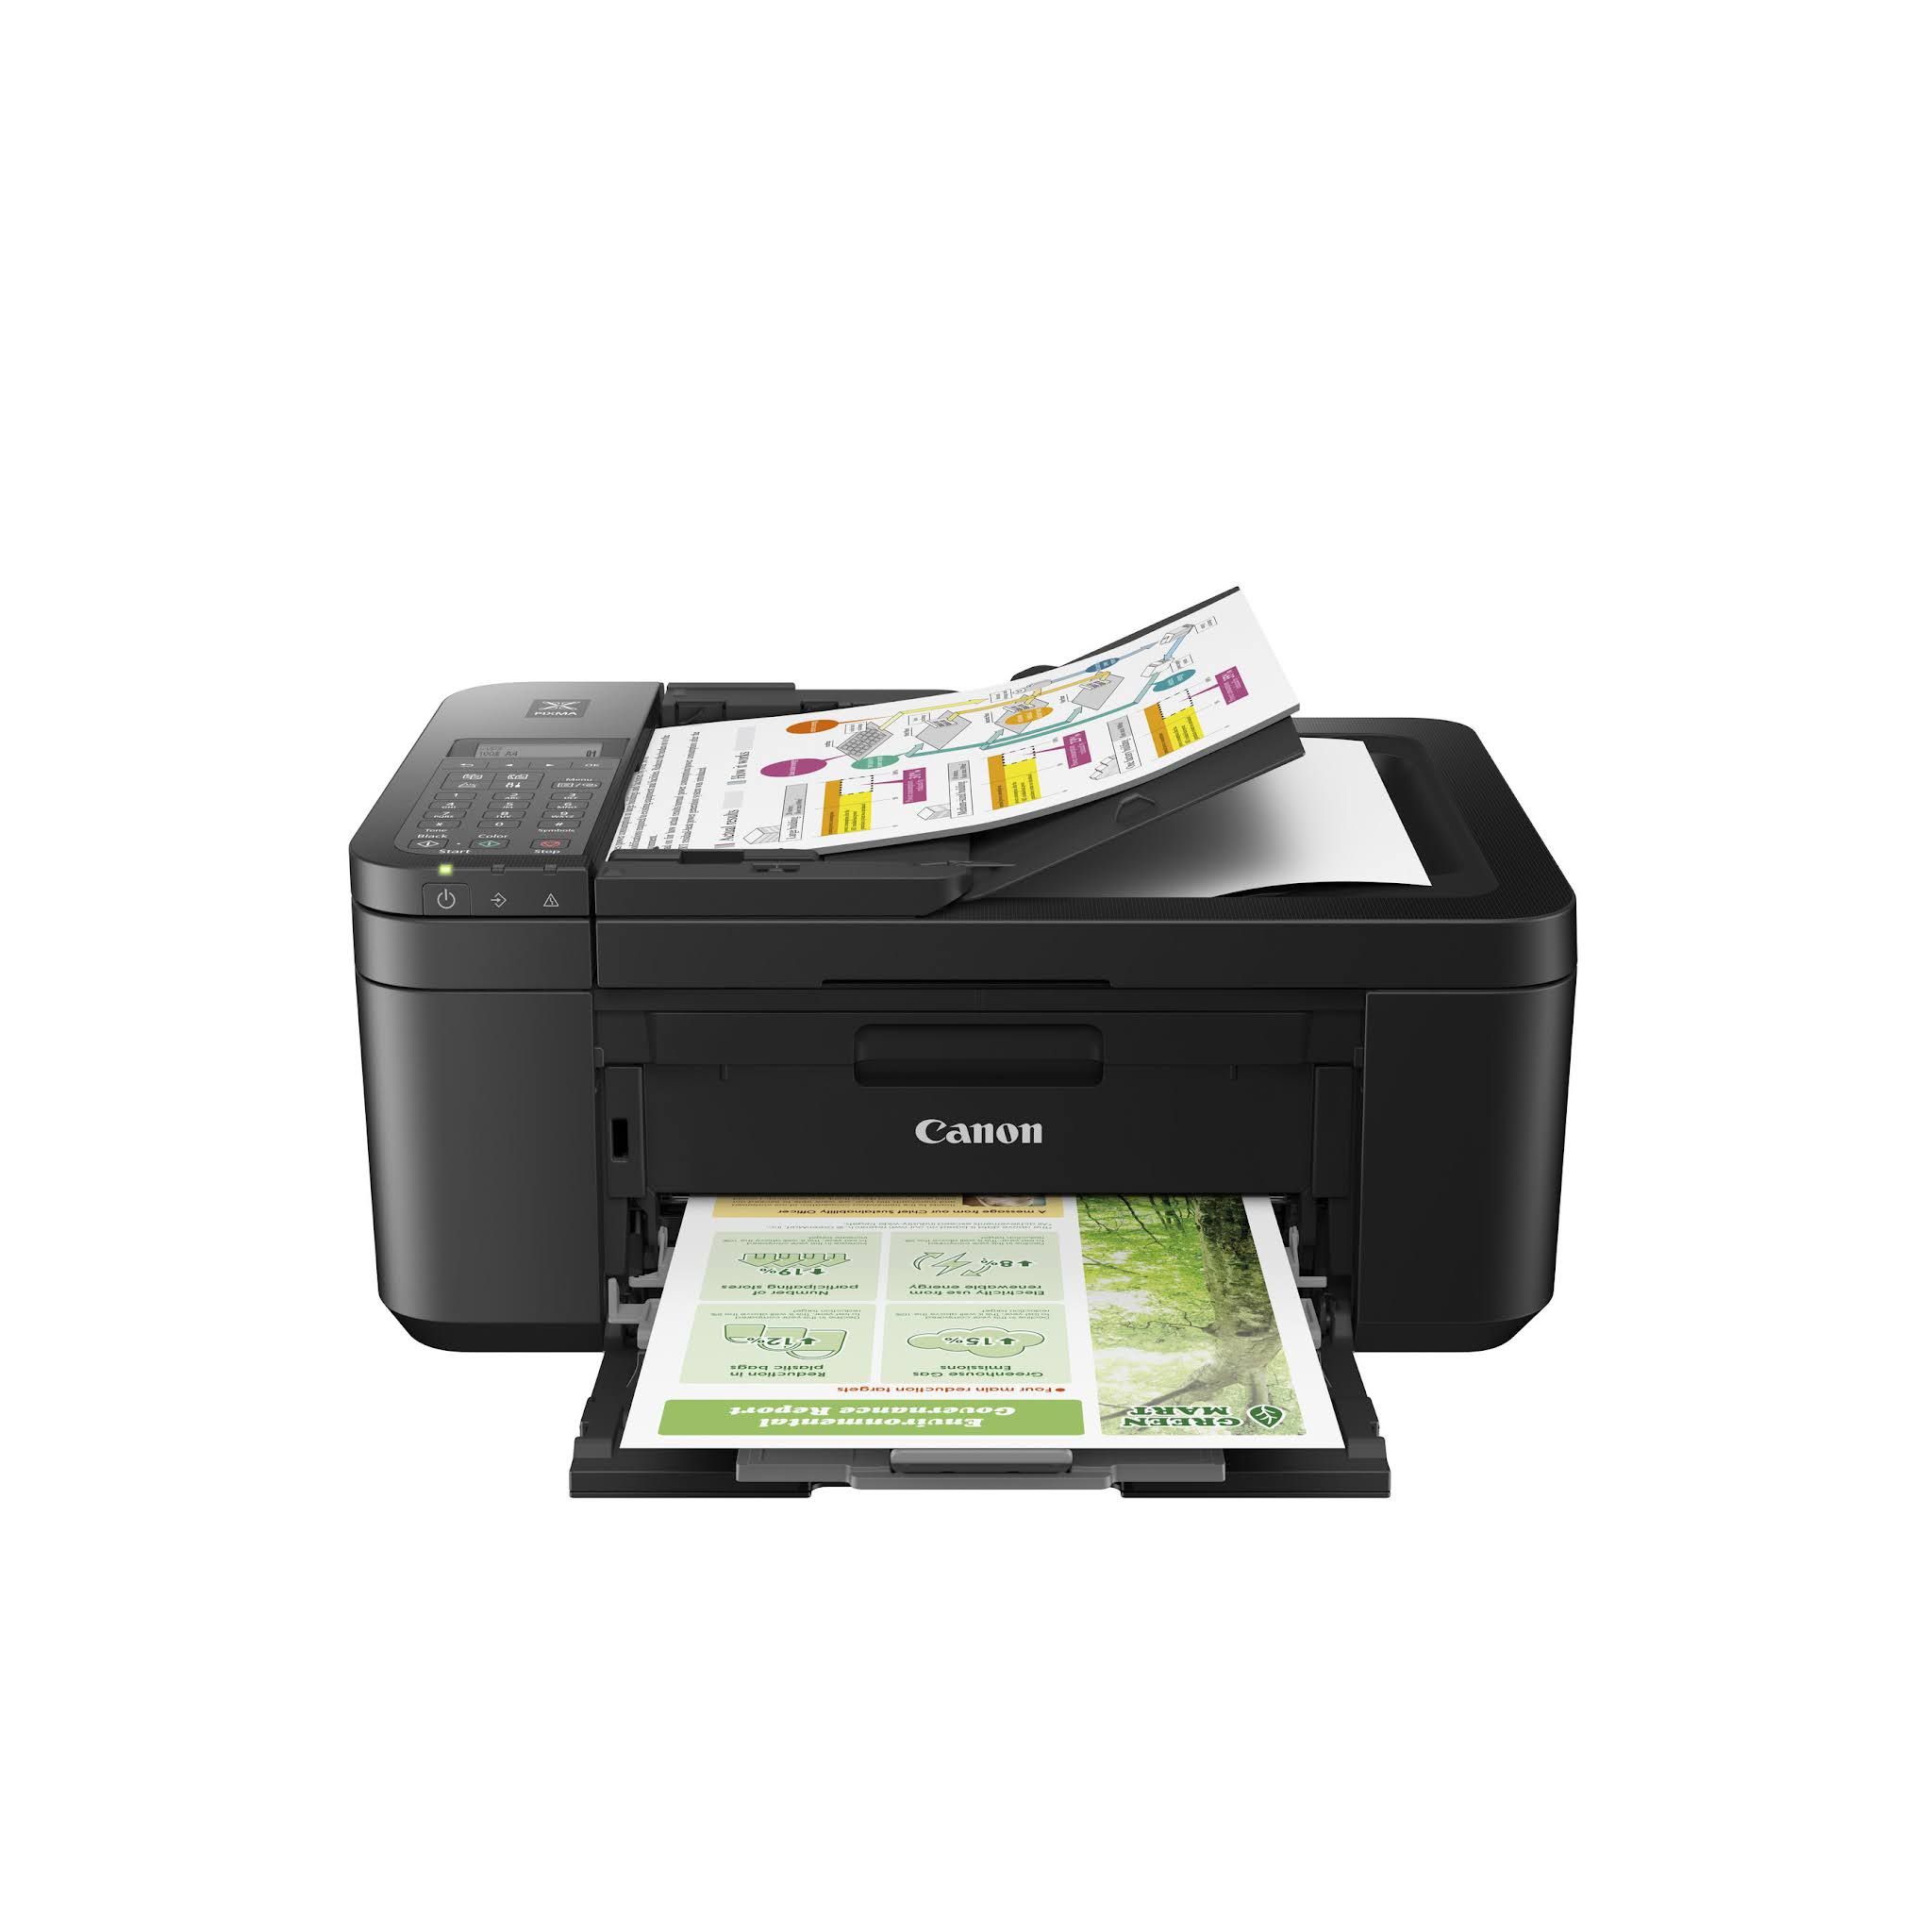 Designed With Ease And Convenience In Mind - Canon U.S.A. Introduces New PIXMA Multifunction Inkjet Printer